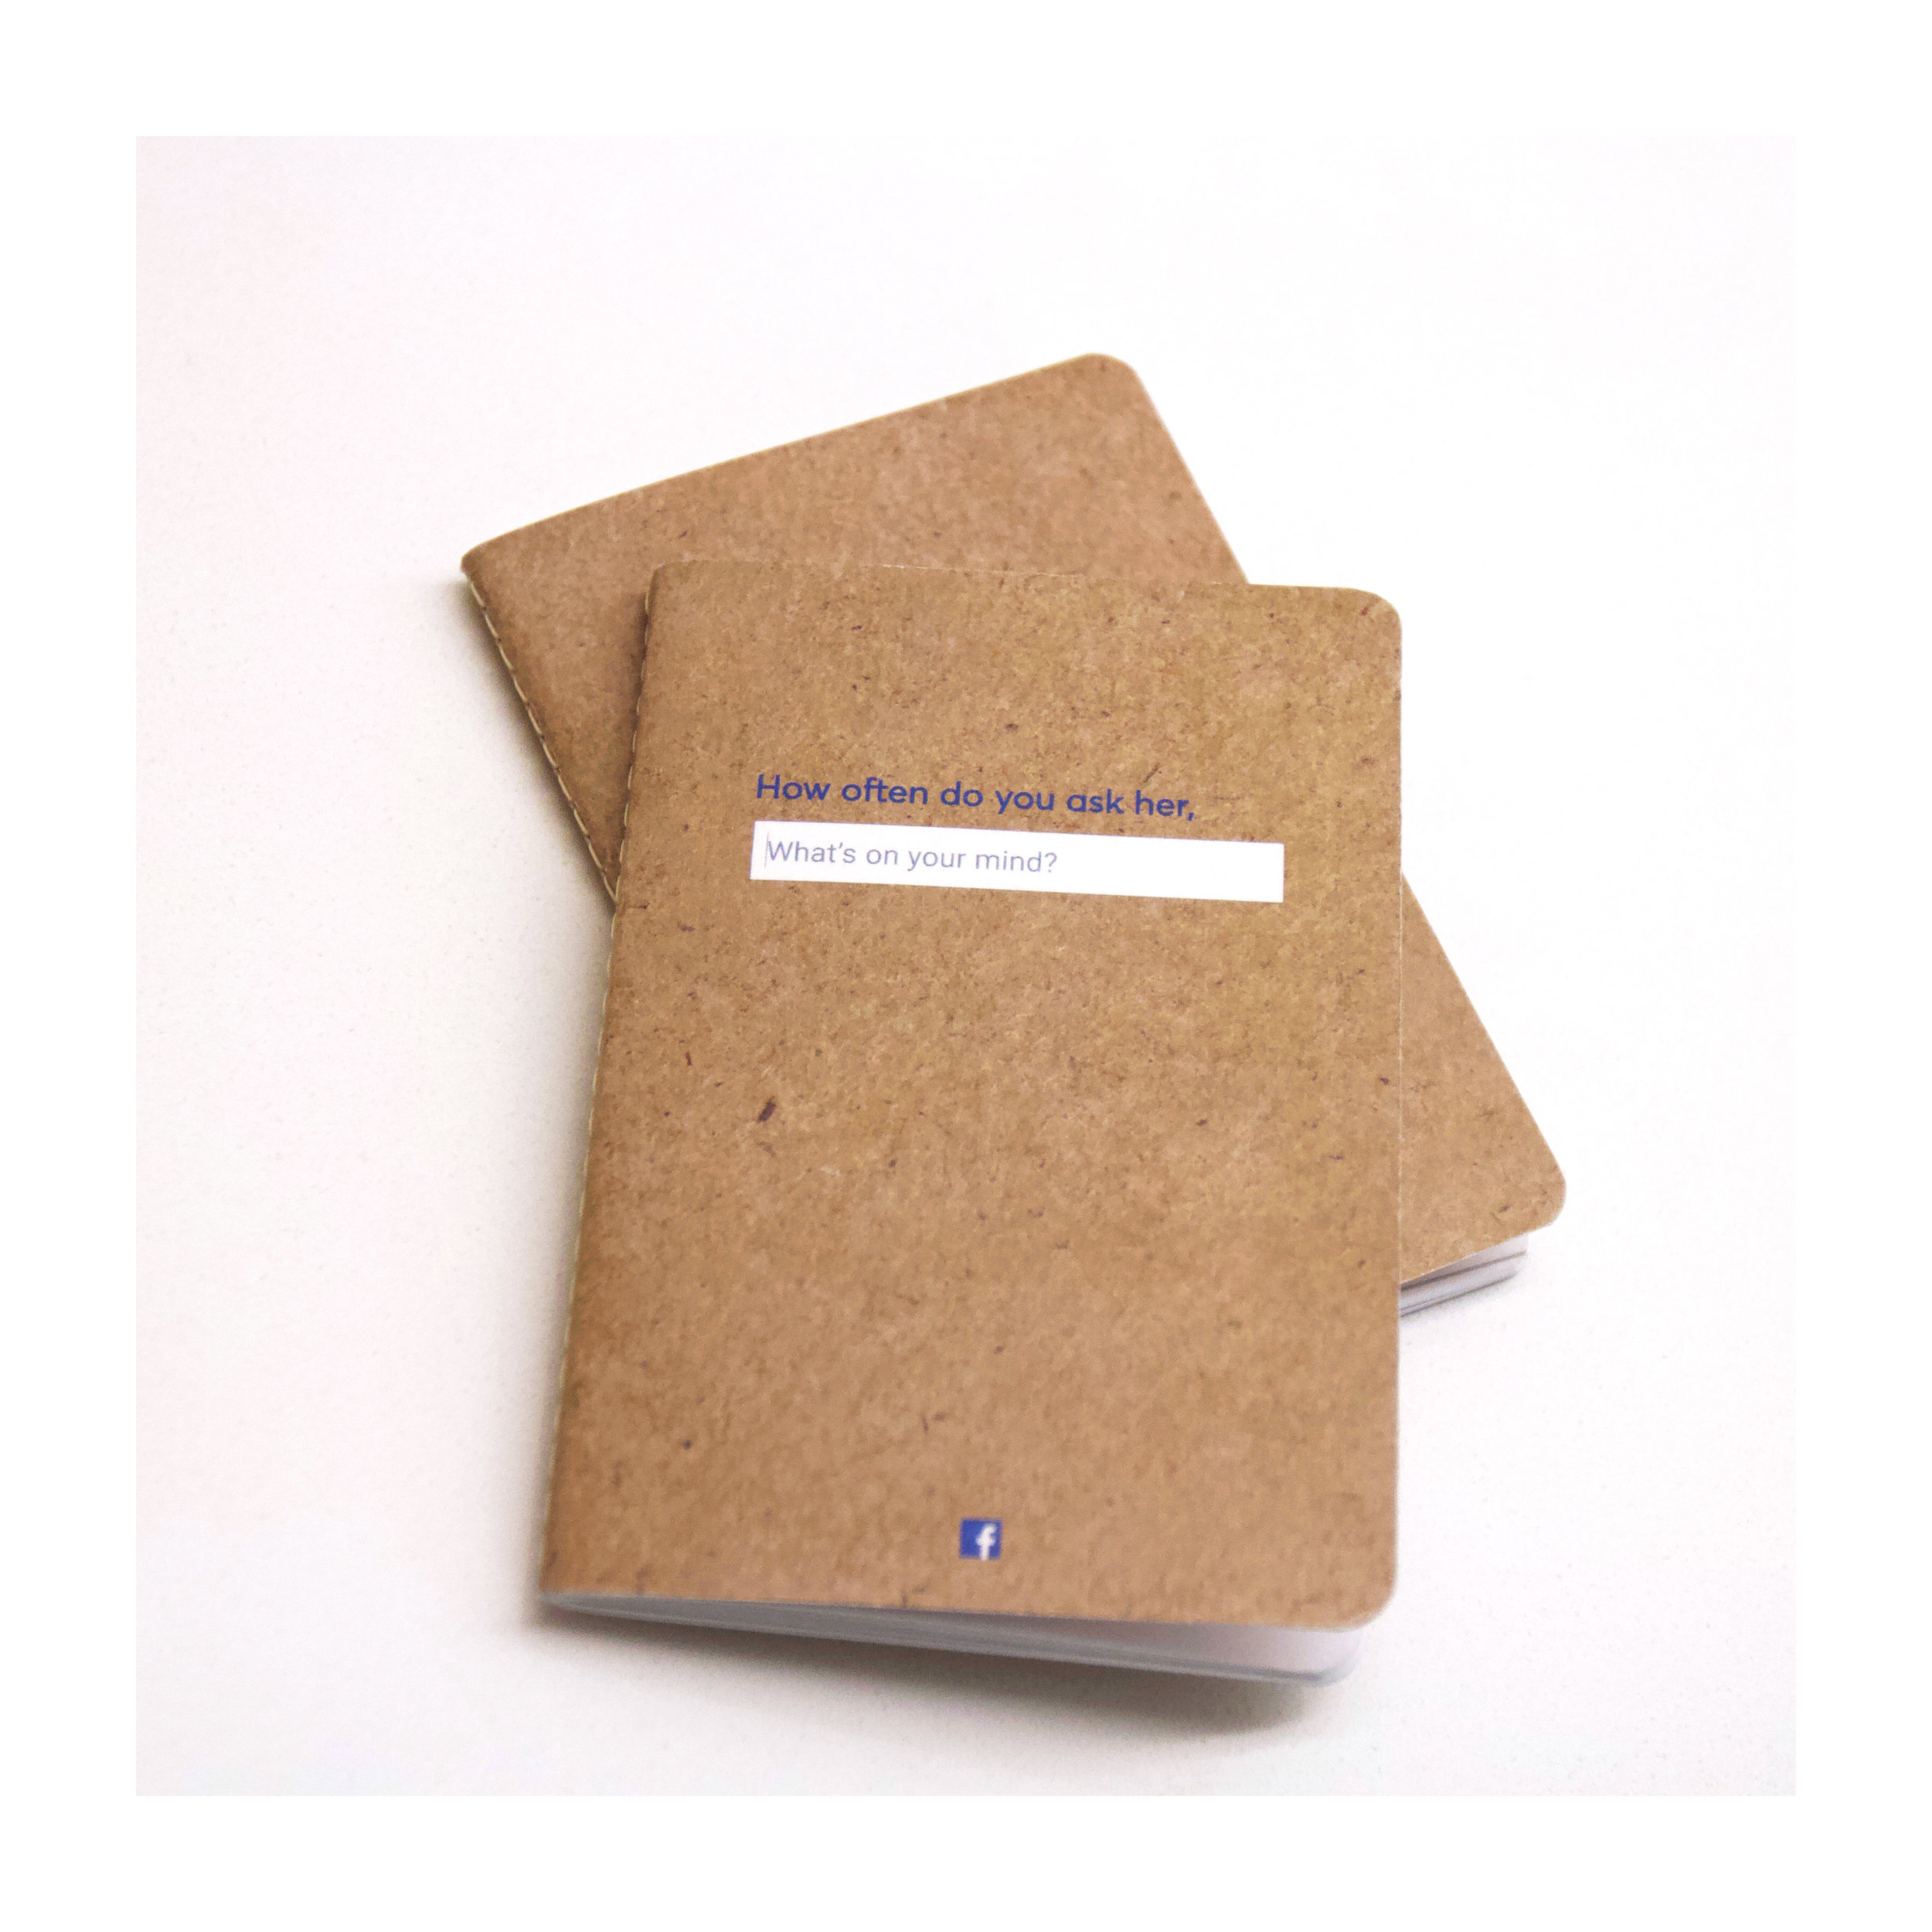 We also created Field Notes with our ad printed on the covers that were given out at the conference.